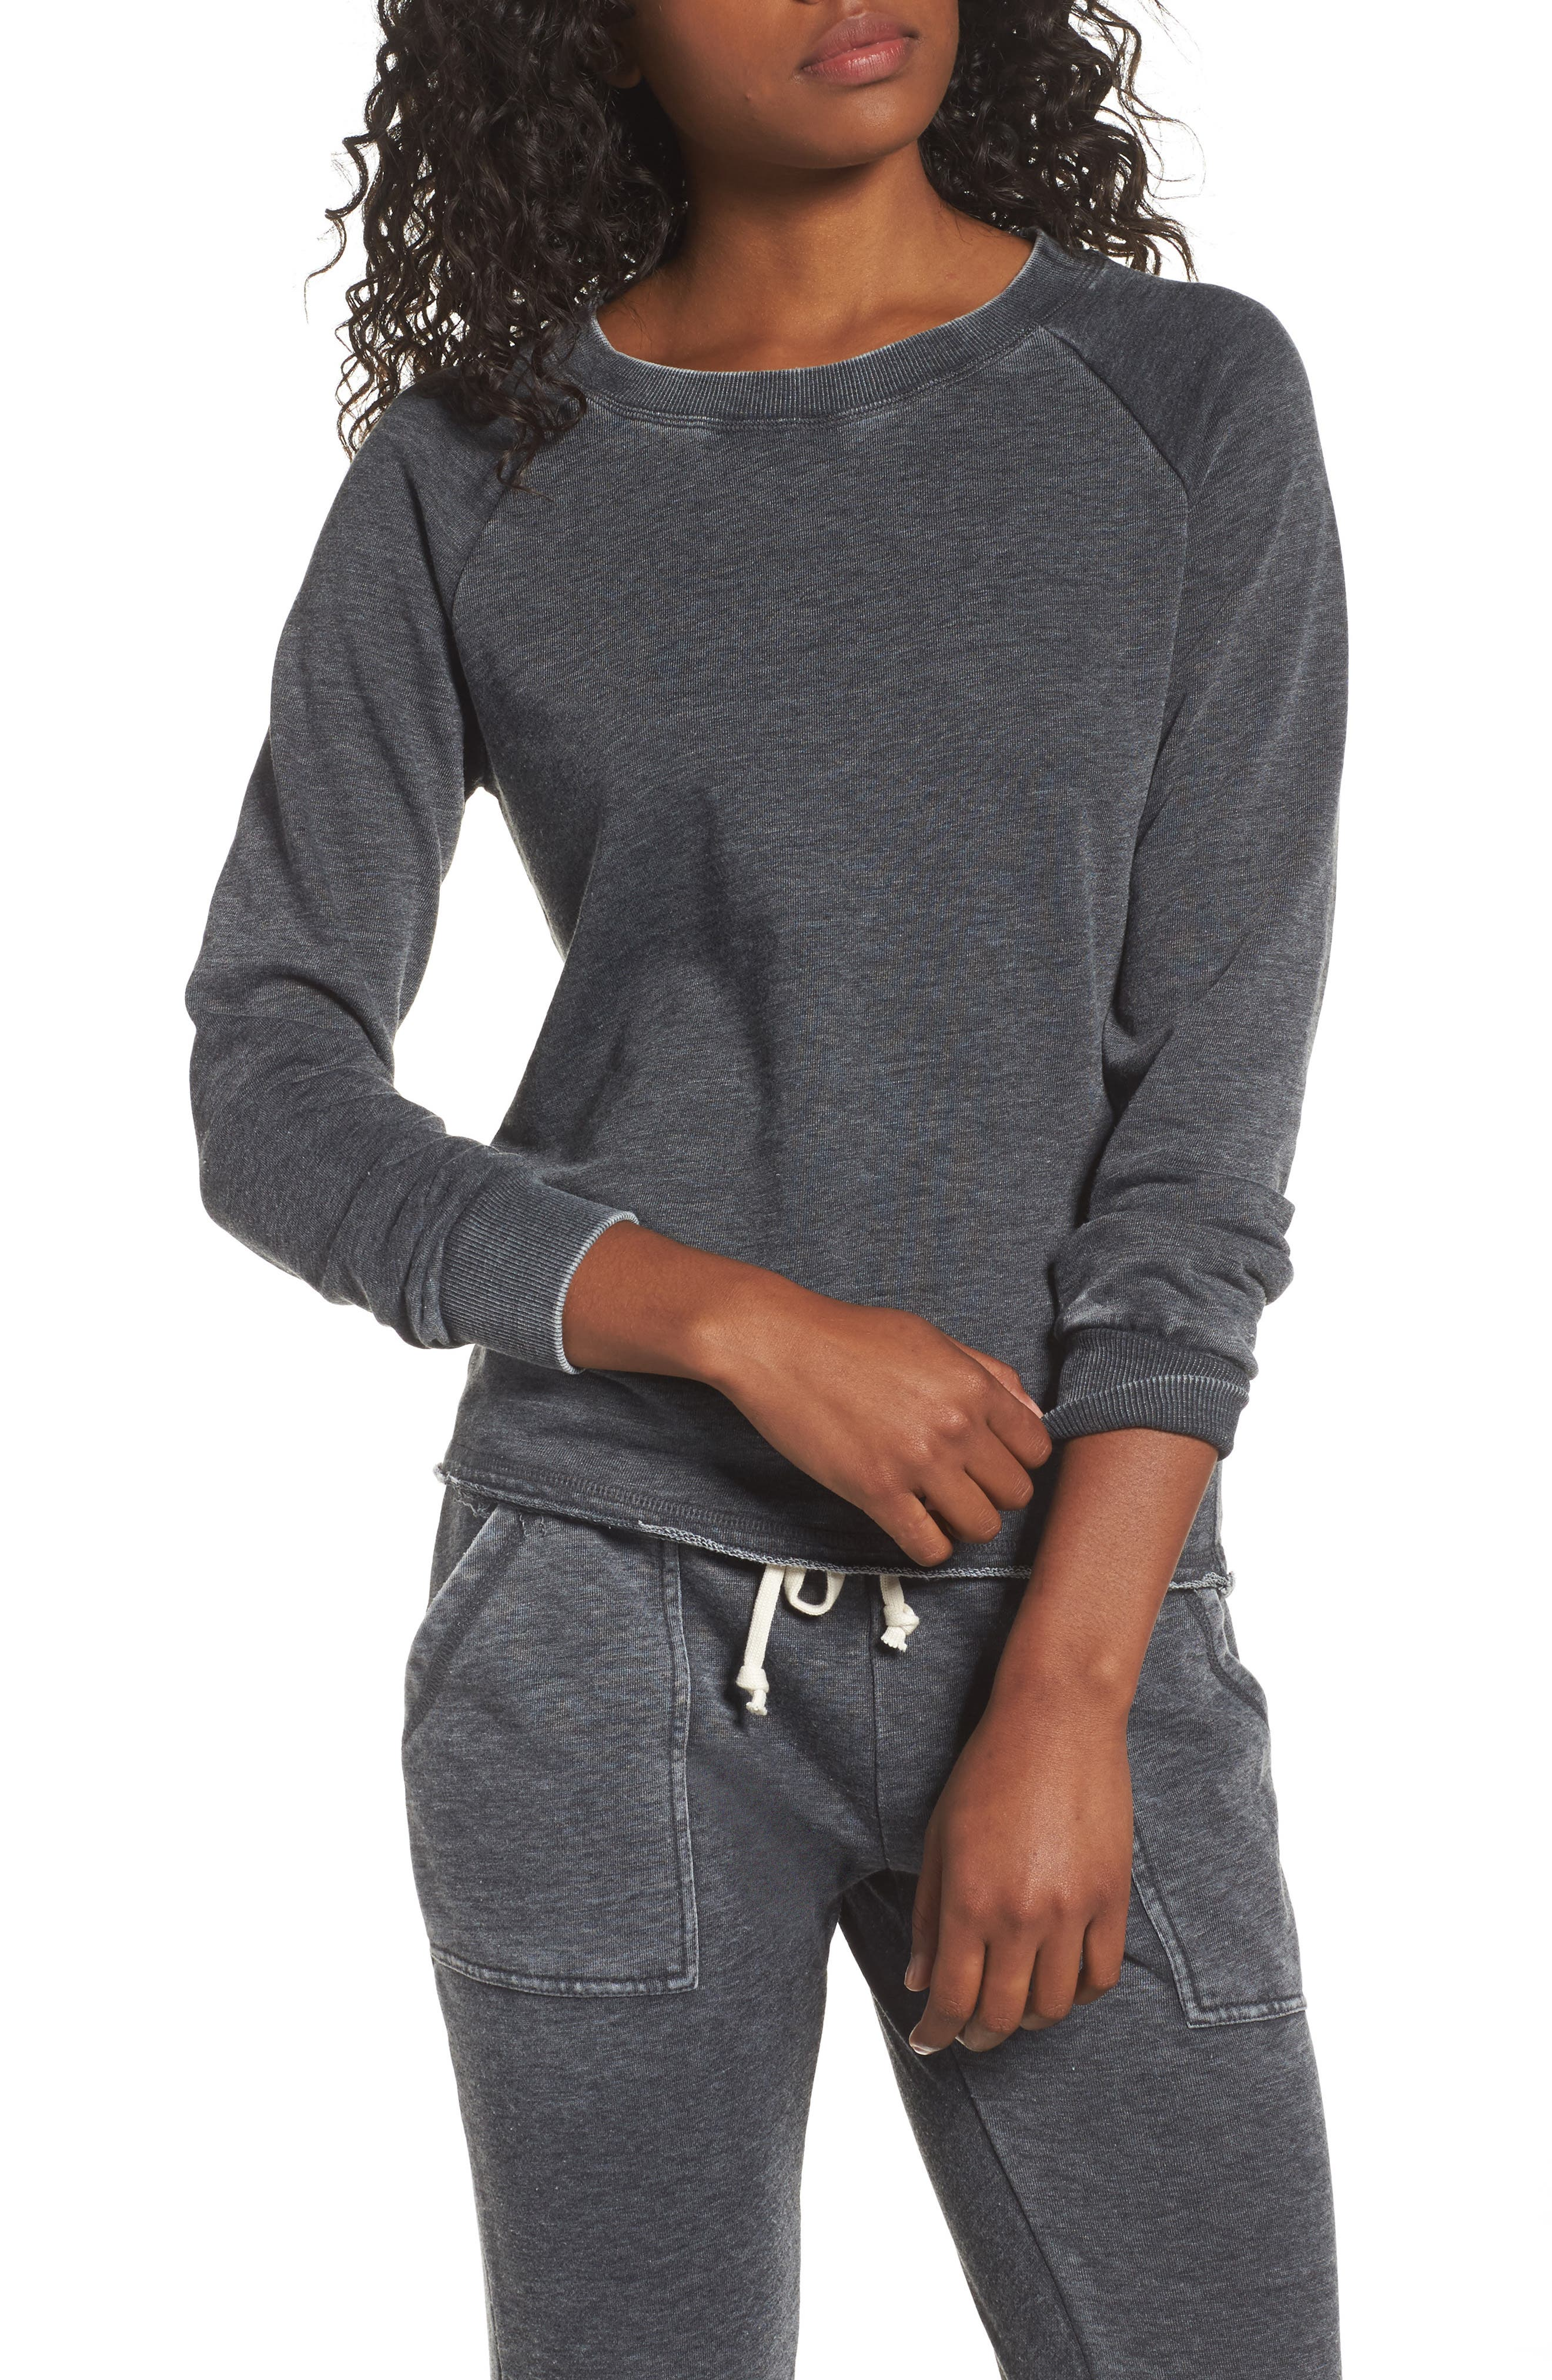 Lazy Day Pullover,                         Main,                         color, 020